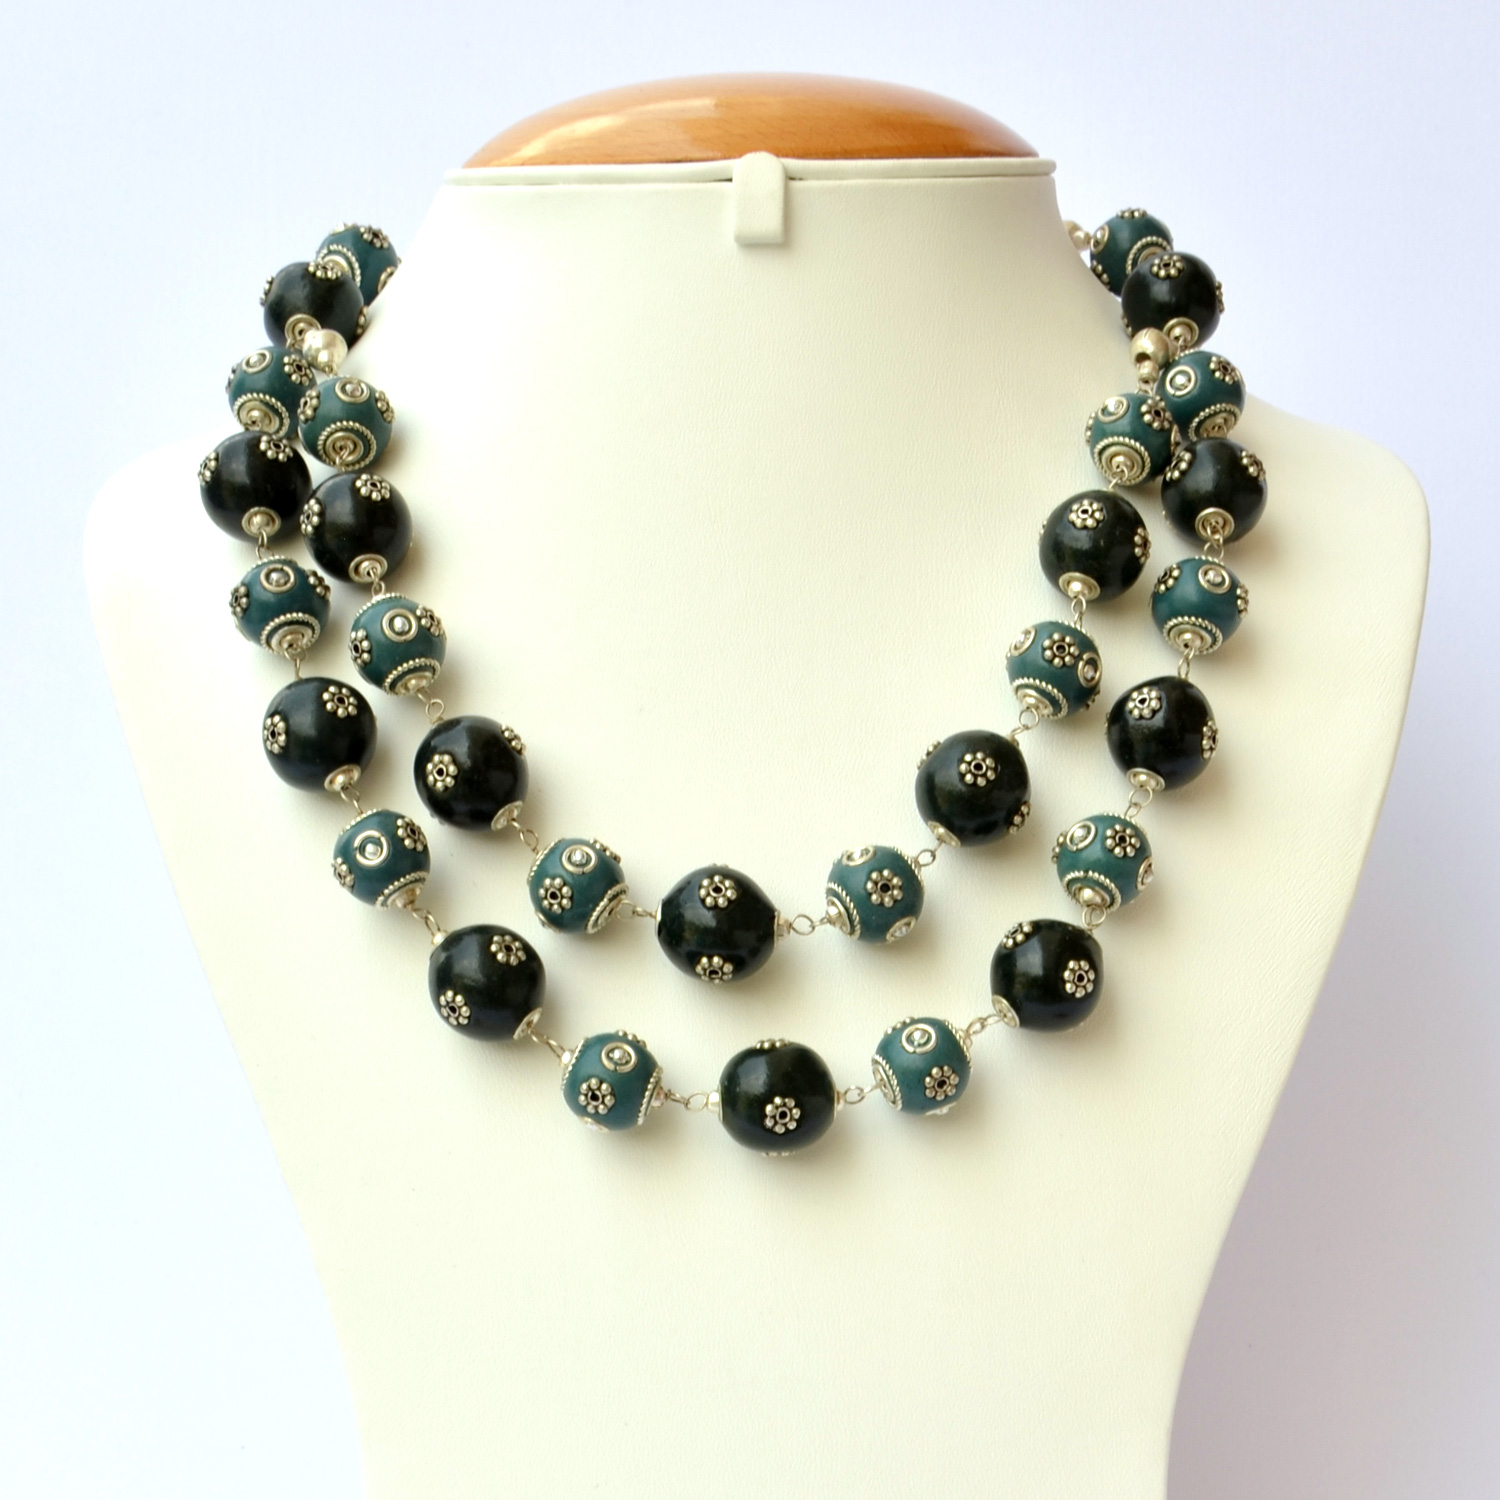 Handmade Necklace with Blue amp; Black Beads having Metal Flowers